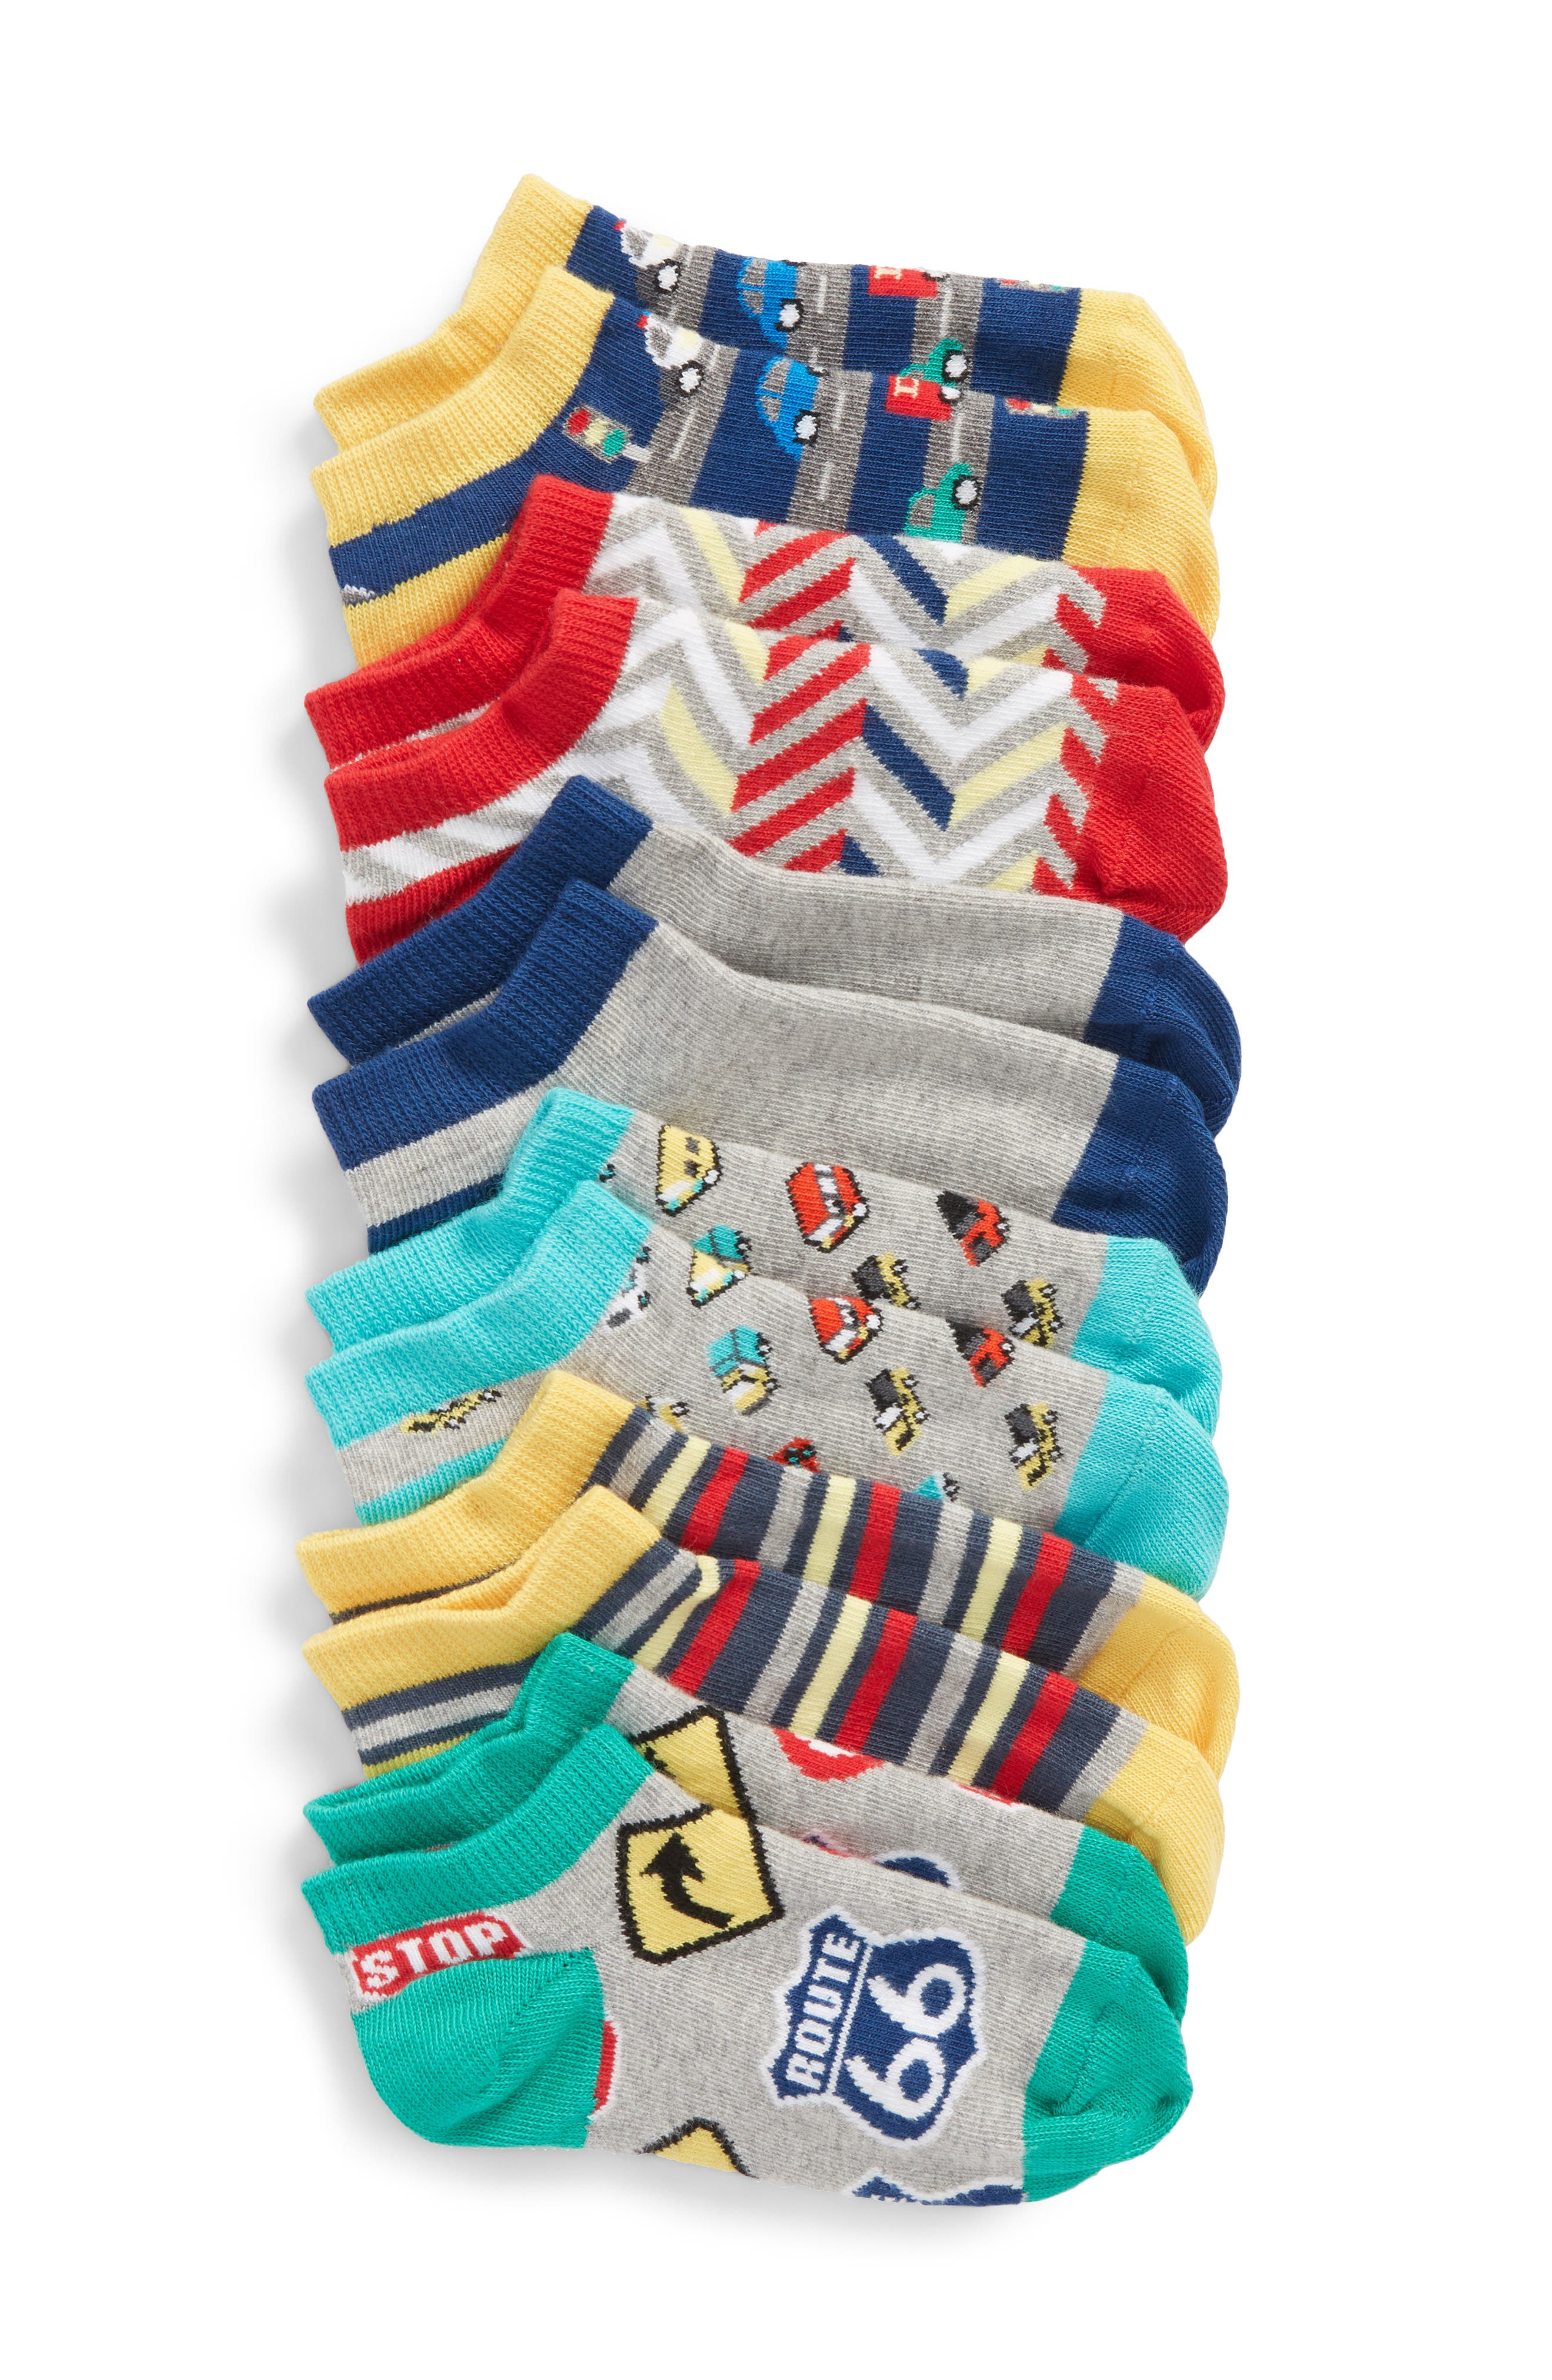 6-Pack Vehicle Low Cut Socks,                         Main,                         color, Grey Castlerock/Green Multi